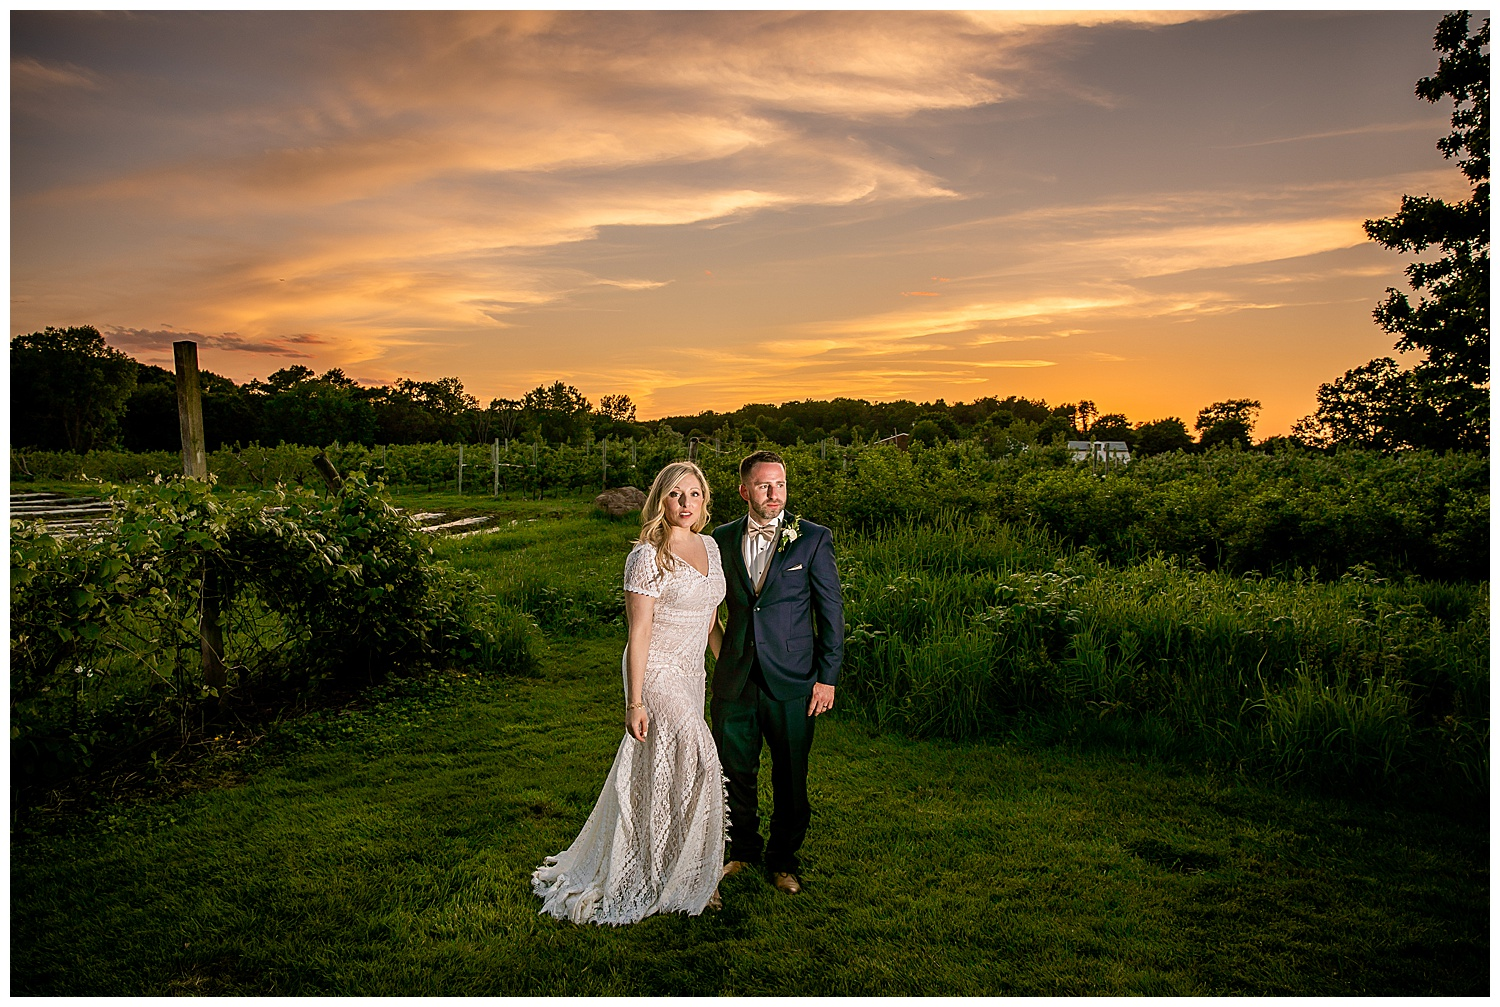 Amanda & Joe – Smith Barn Peabody Wedding